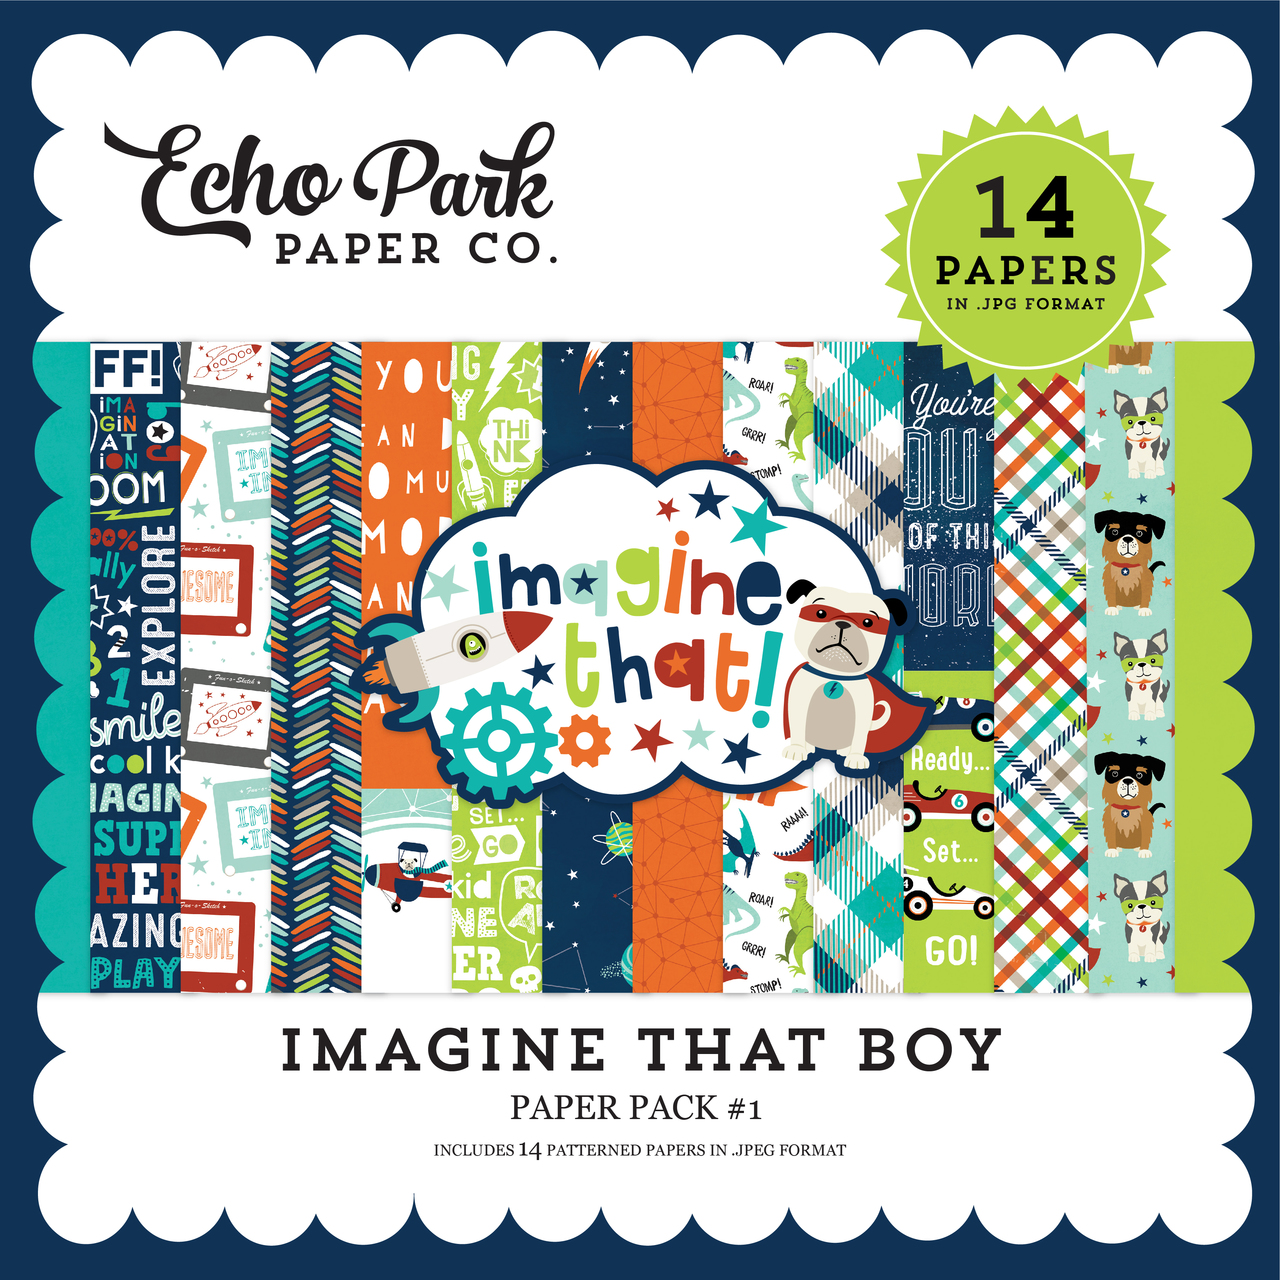 Imagine That Boy Paper Pack #1